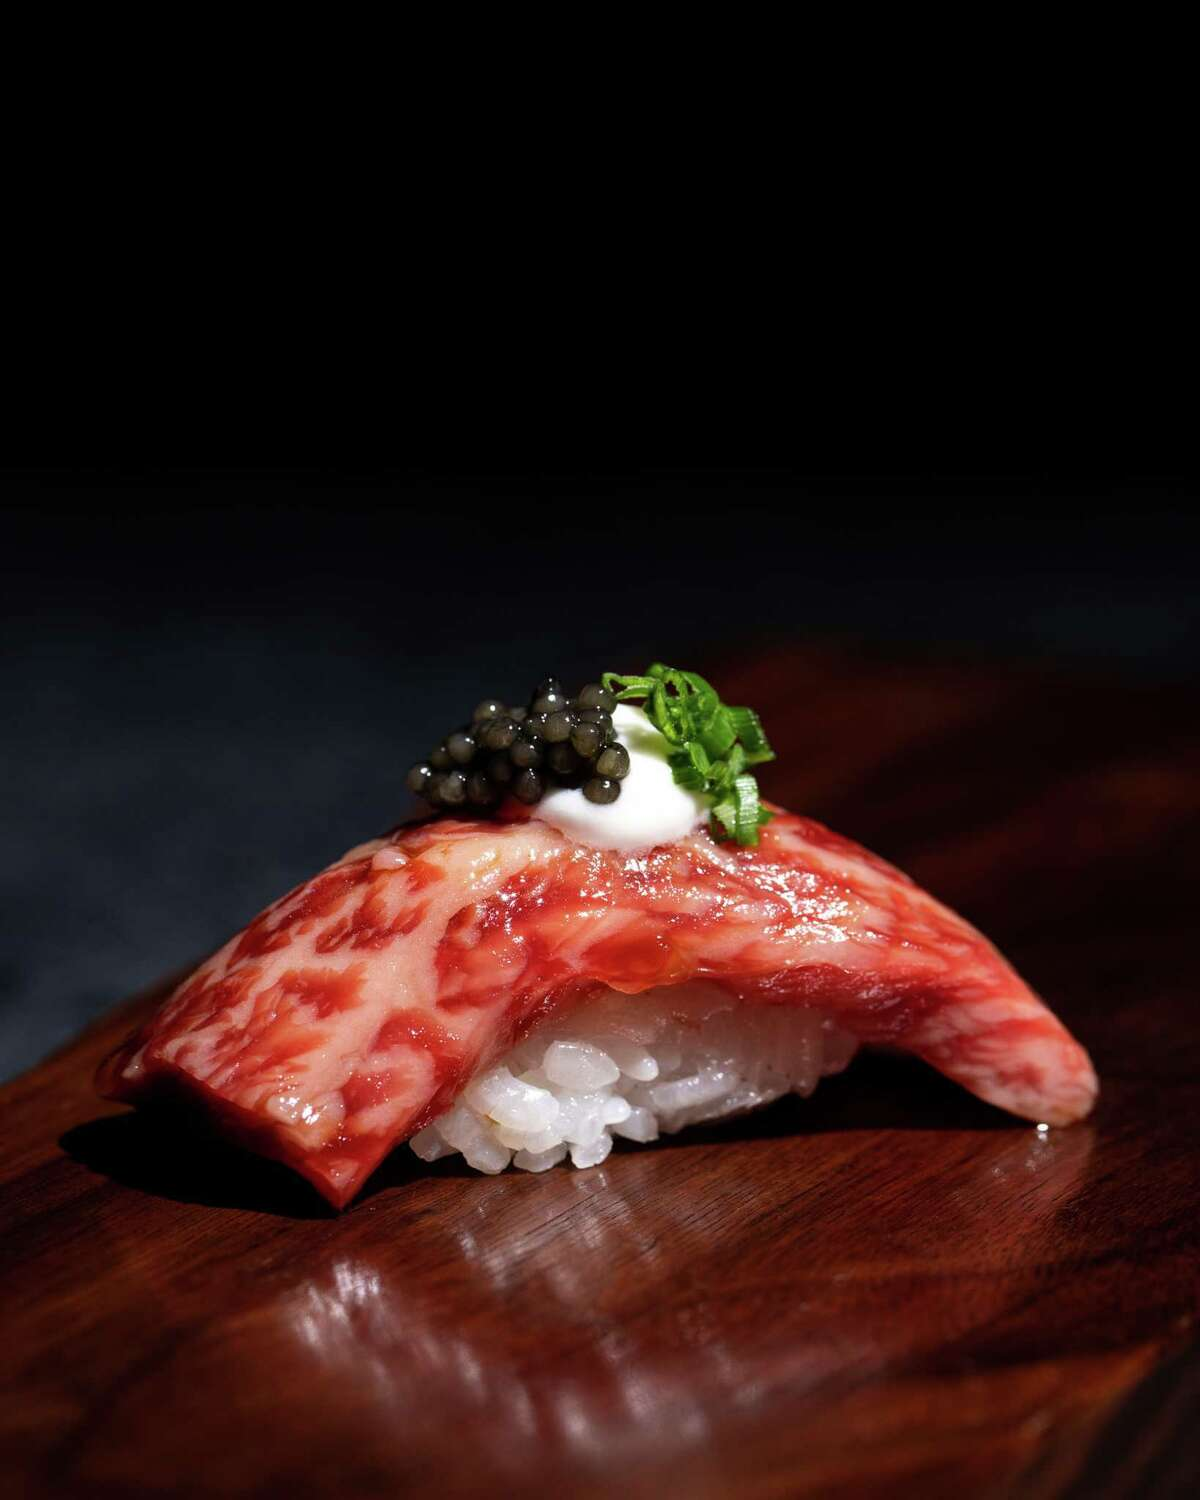 Uchiko, the sister restaurant to Uchi, will open its second Texas location at Post Oak Place, 1801 Post Oak, a new mixed-use development owned by Zadok Jewelers. Hai Hospitality, the restaurant group that operates Tyson Cole's Uchi brands, announced Uchiko will open in 2021.Shown: Uchiko A5 Nigiri.